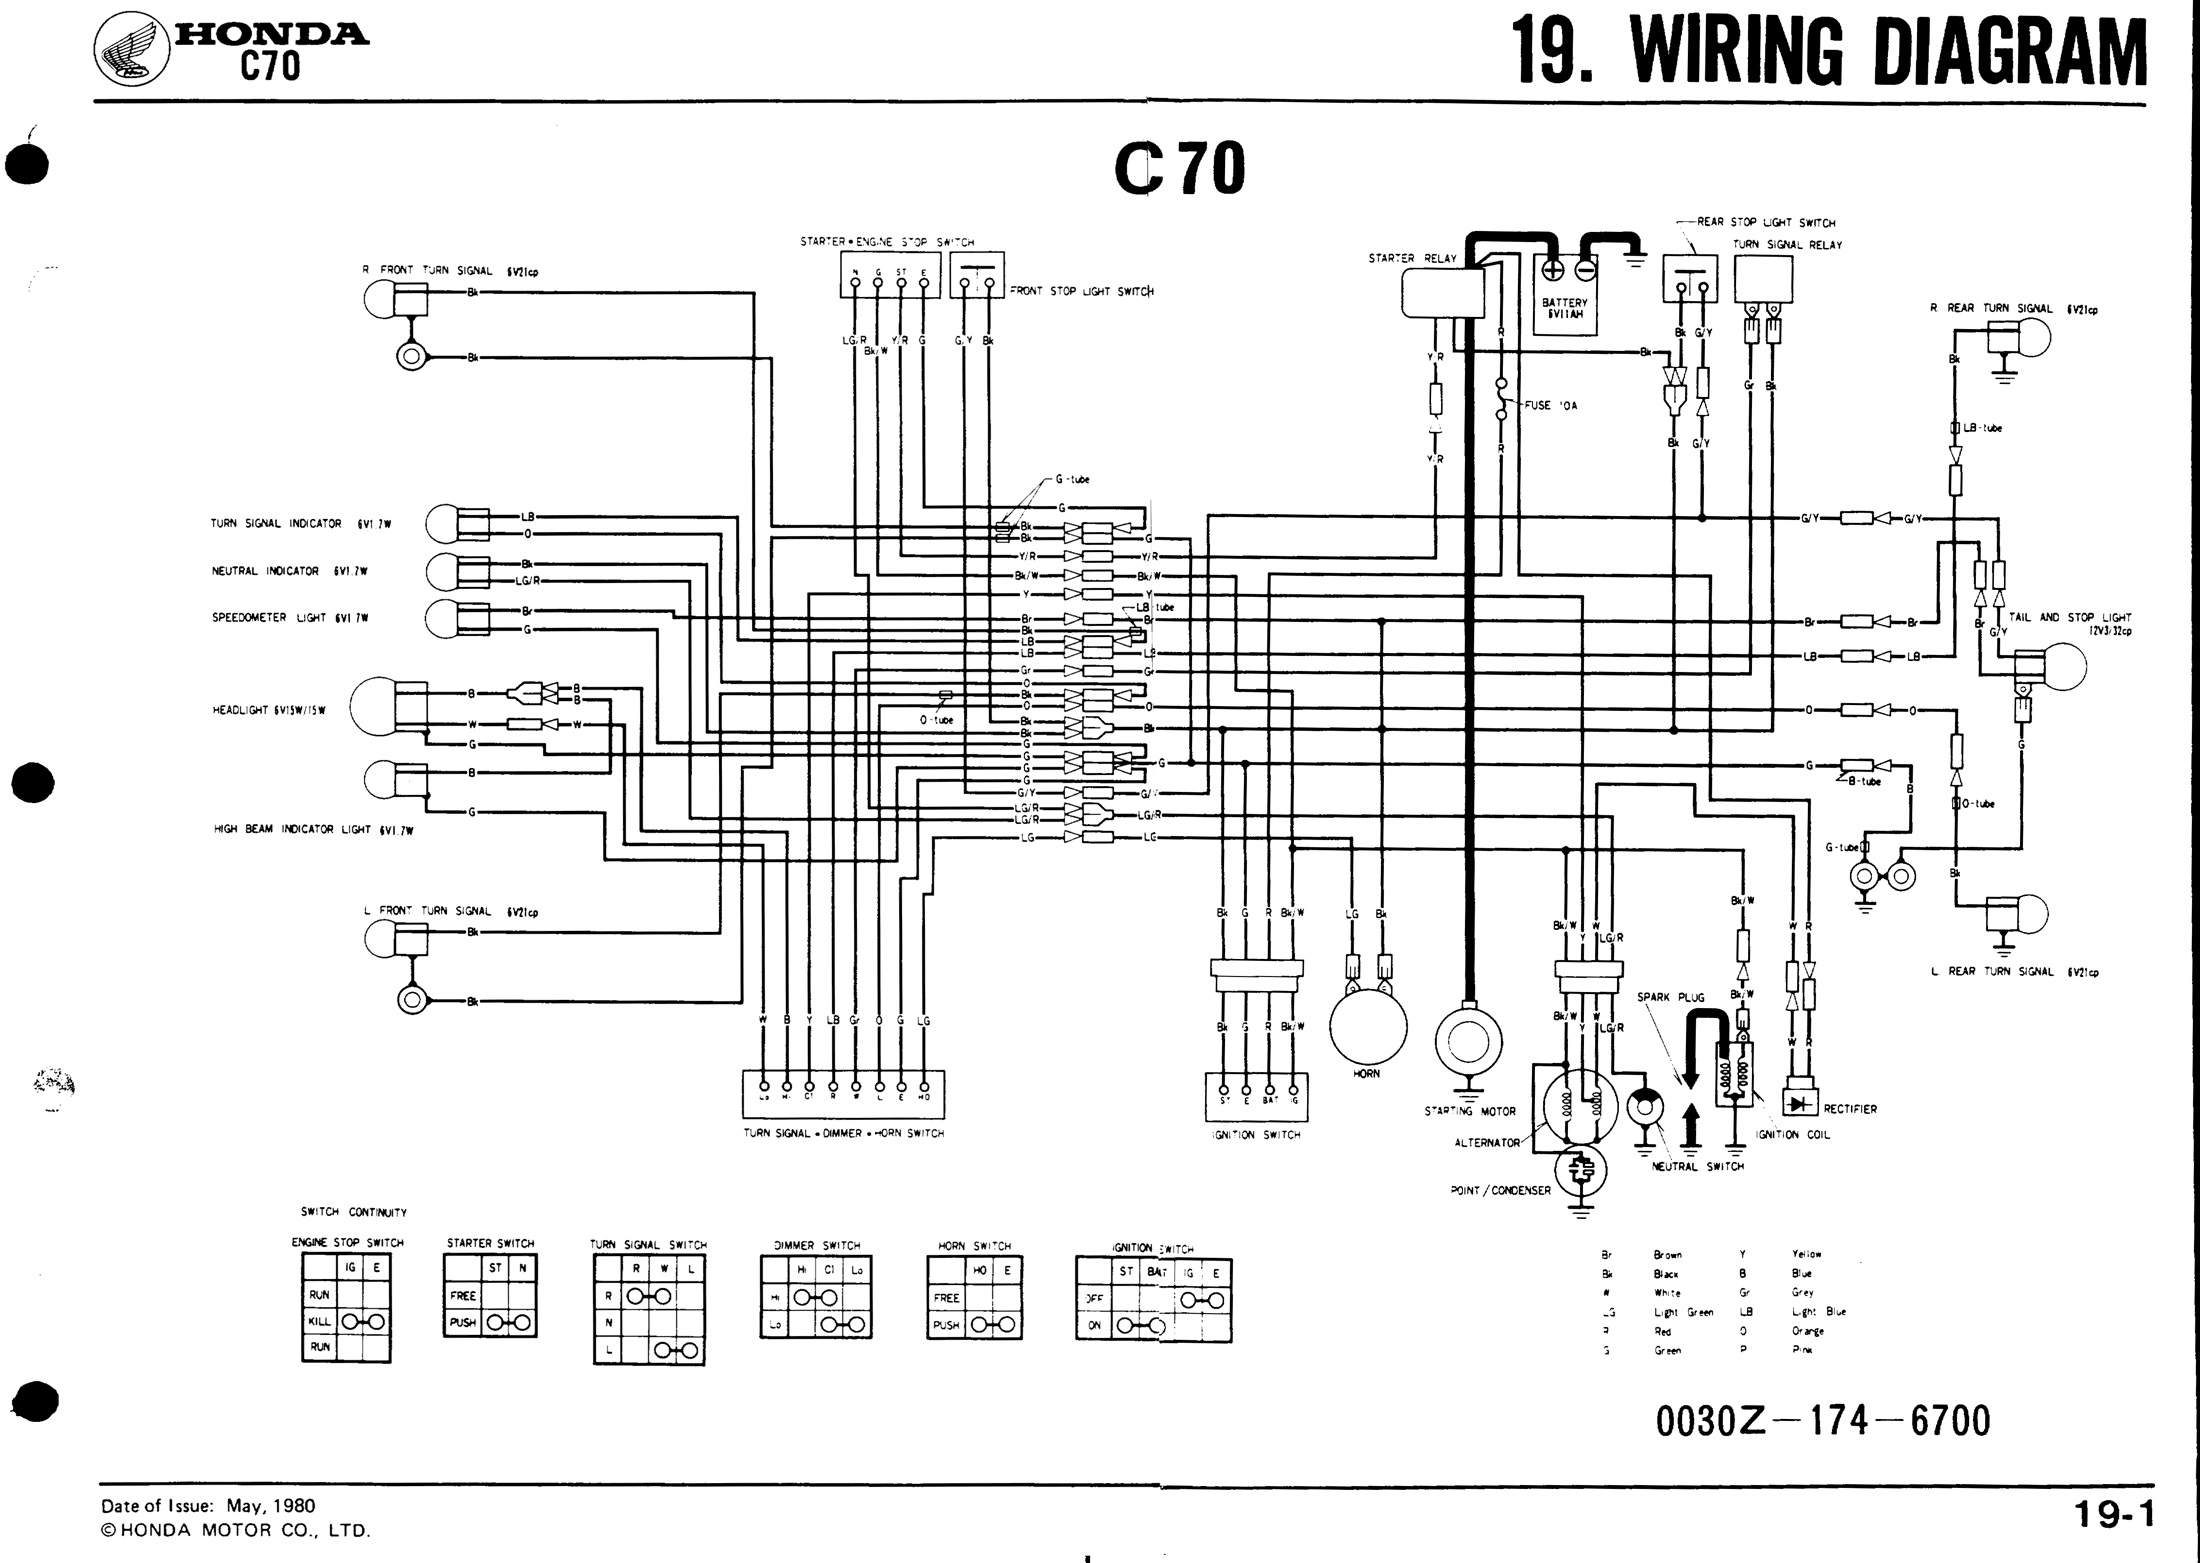 Chevrolet C70 Wiring Diagram Another Blog About 1996 Honda Passport Get Free Image